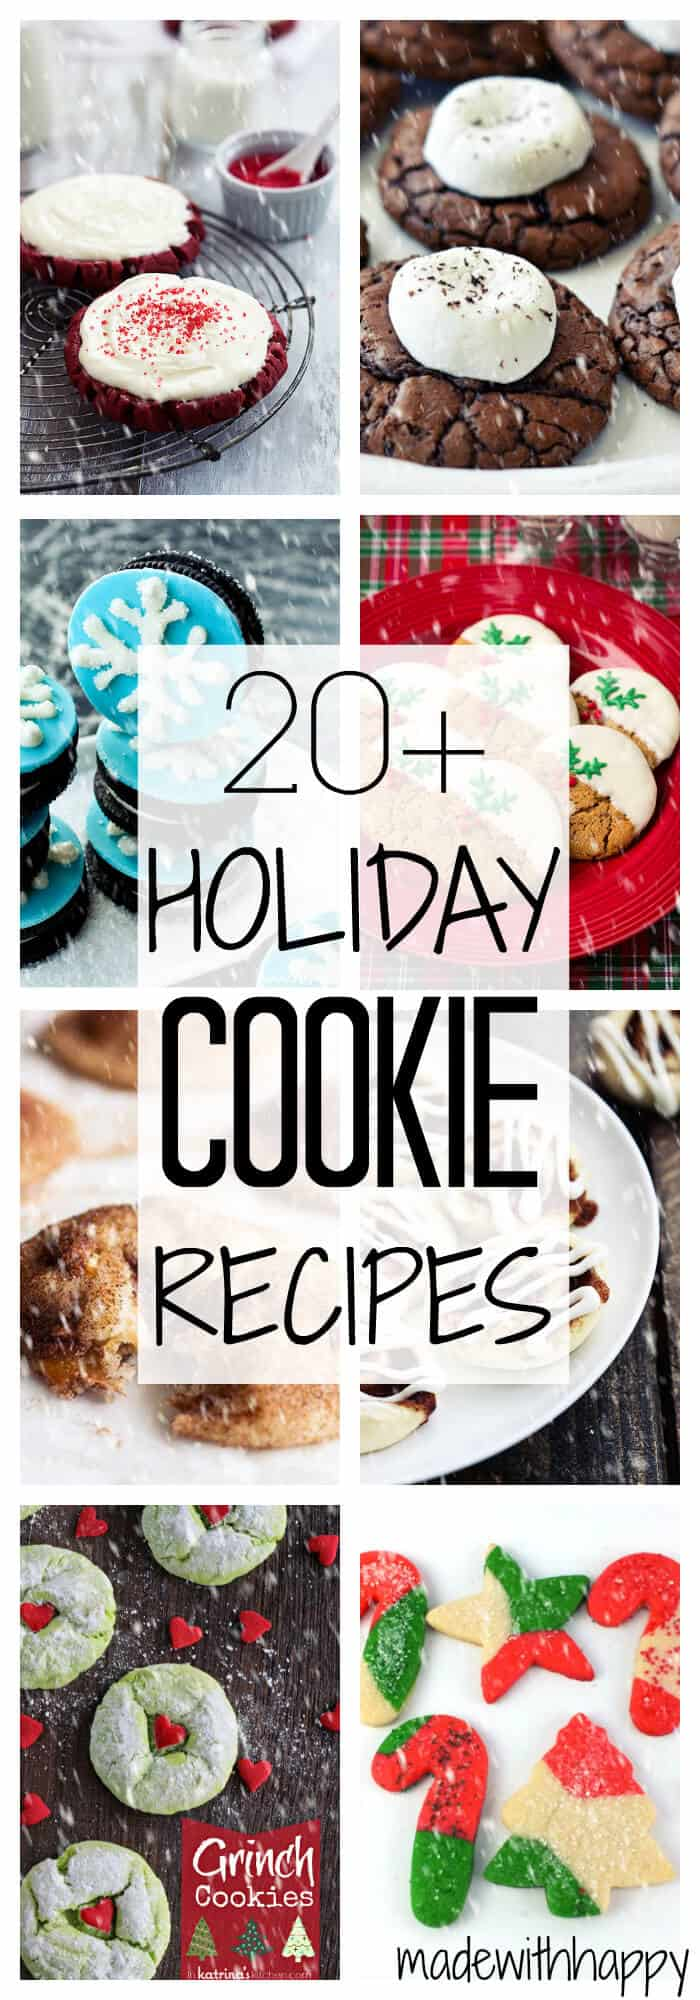 20+ Holiday Cookies | Christmas Cookie Recipes | www.madewithHAPPY.com